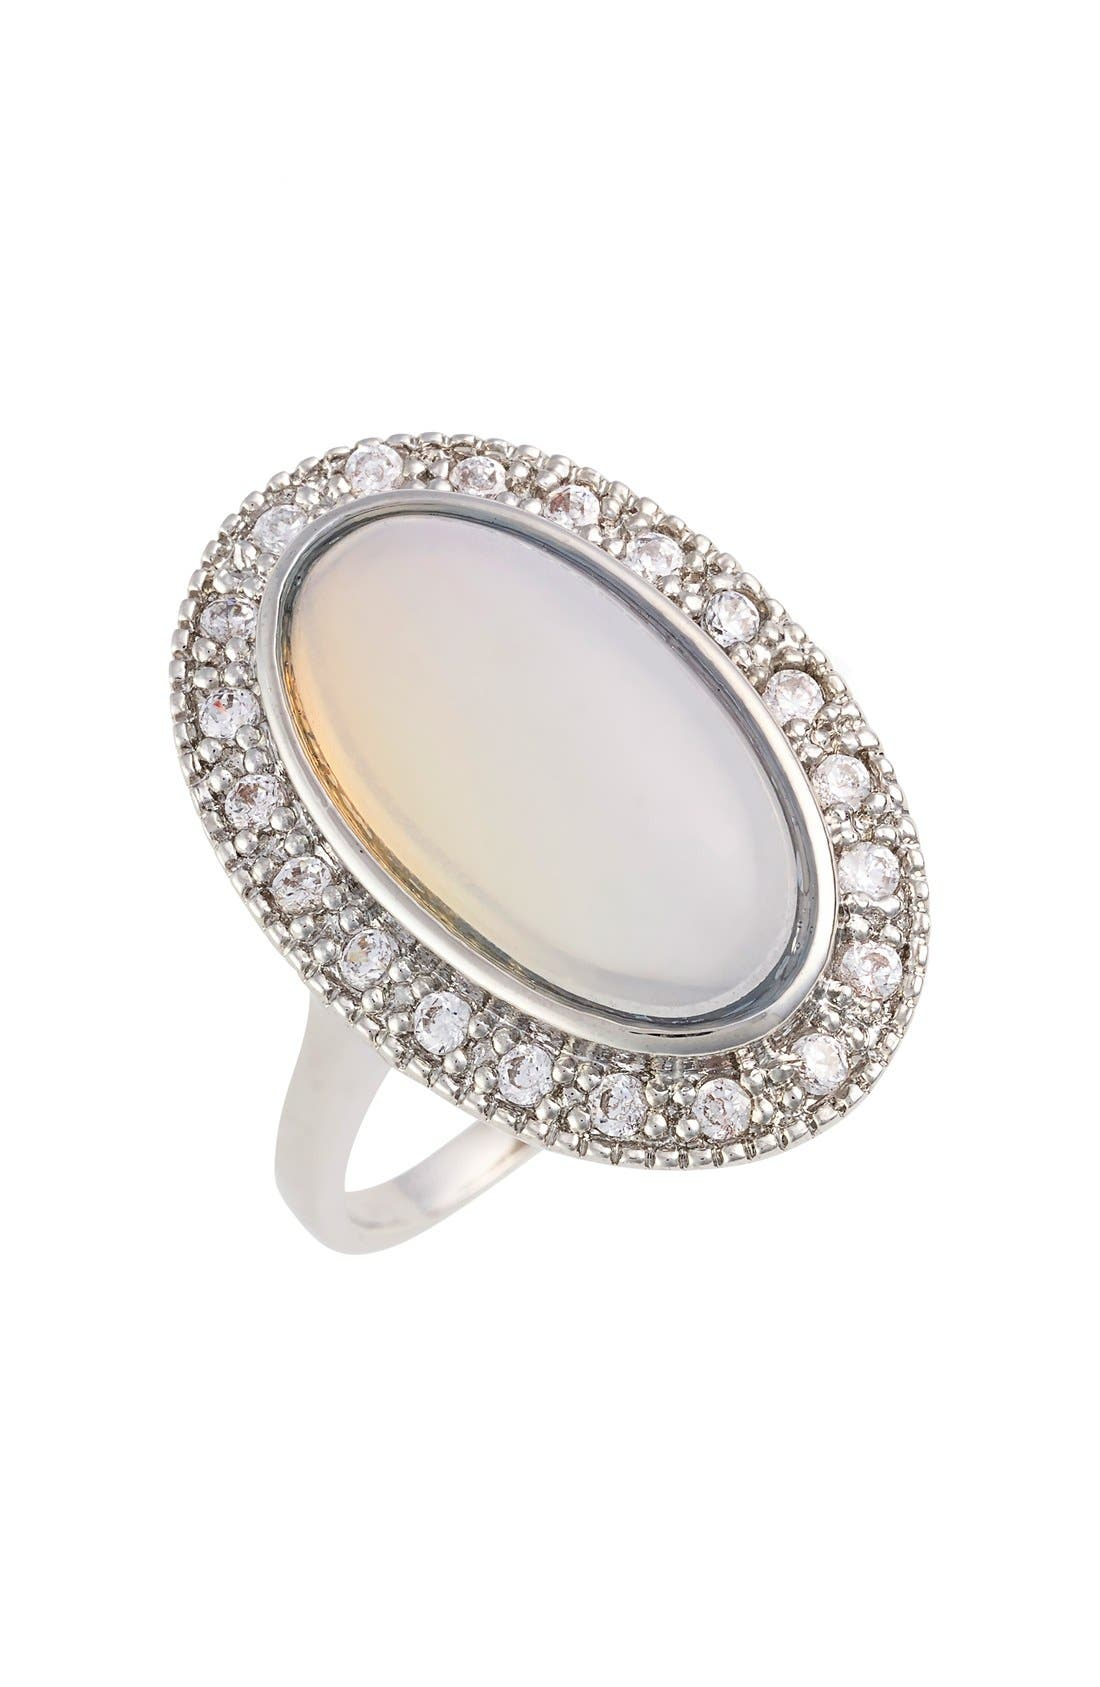 Alternate Image 1 Selected - Samantha Wills 'Fields of Gold' Ring